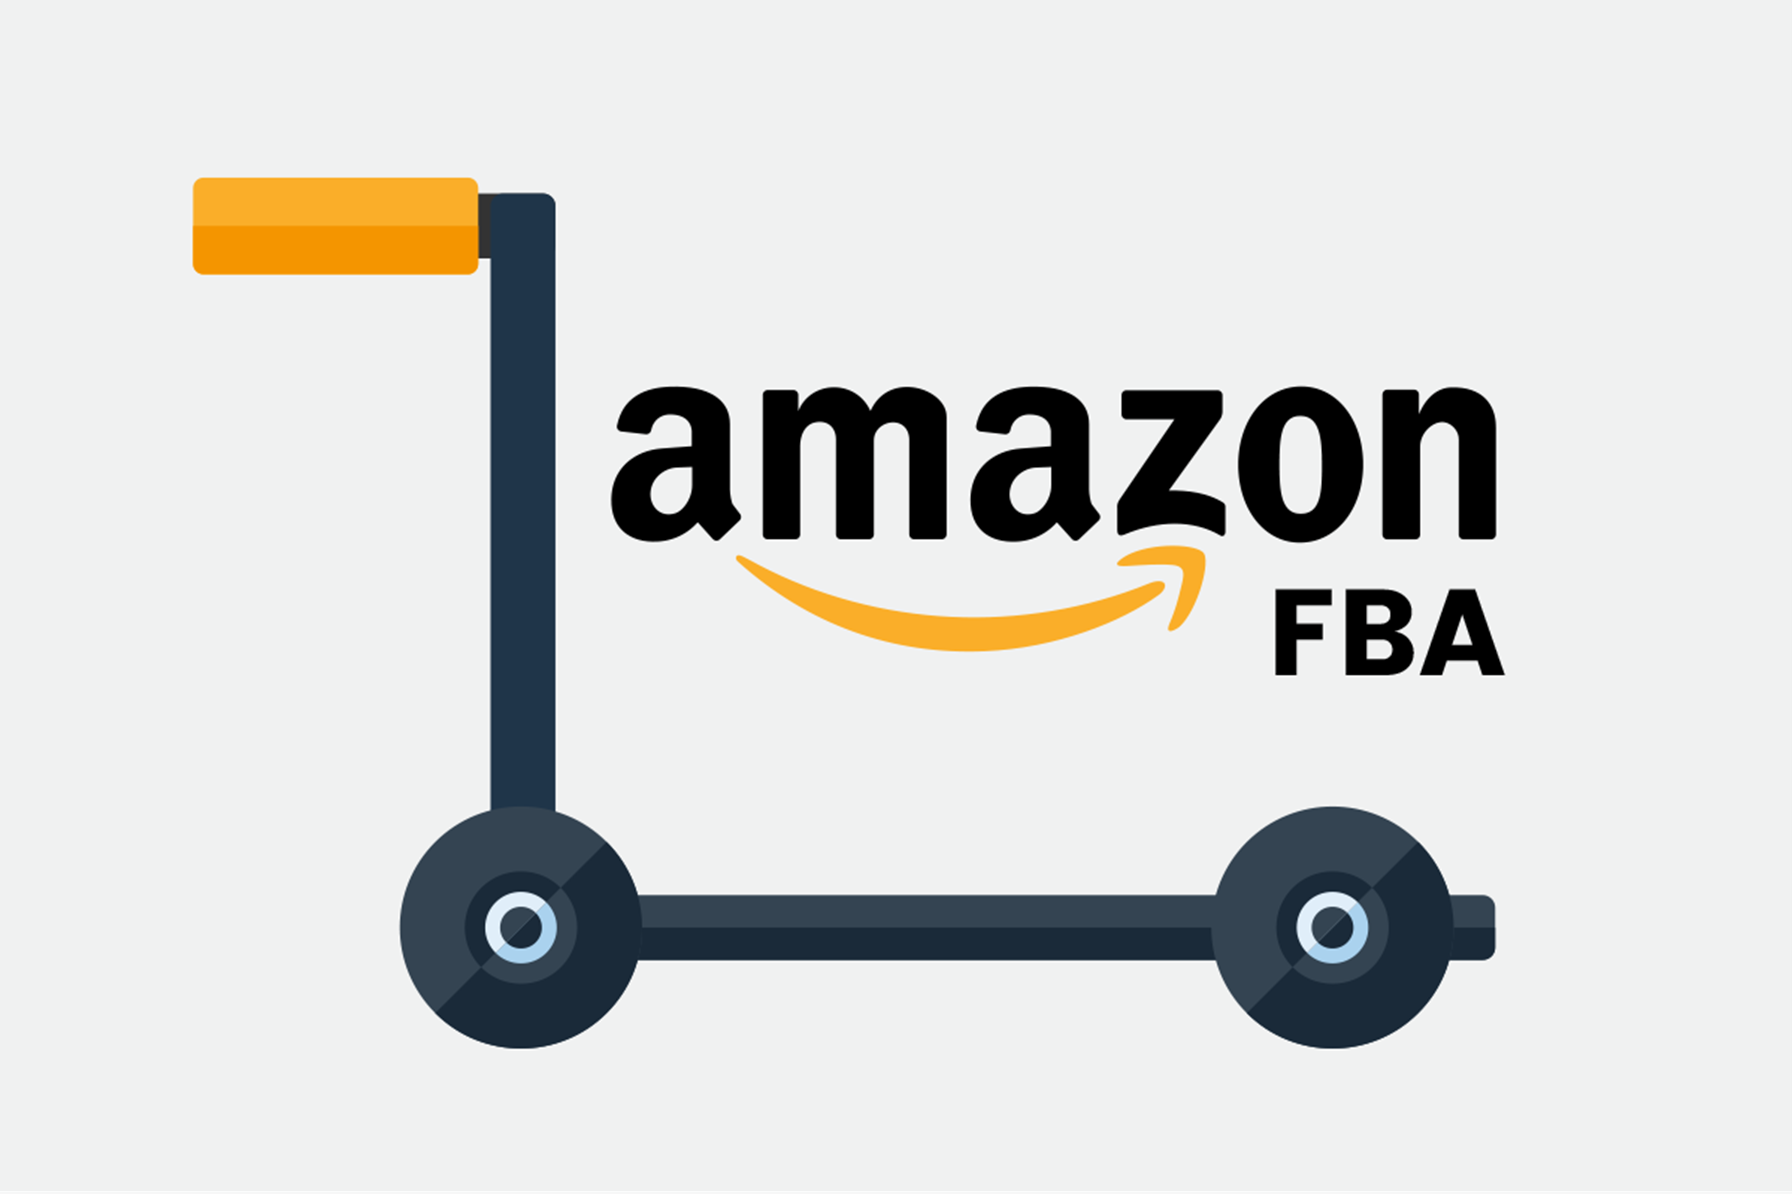 Amazon-FBA-process-by-WebsiteClosers